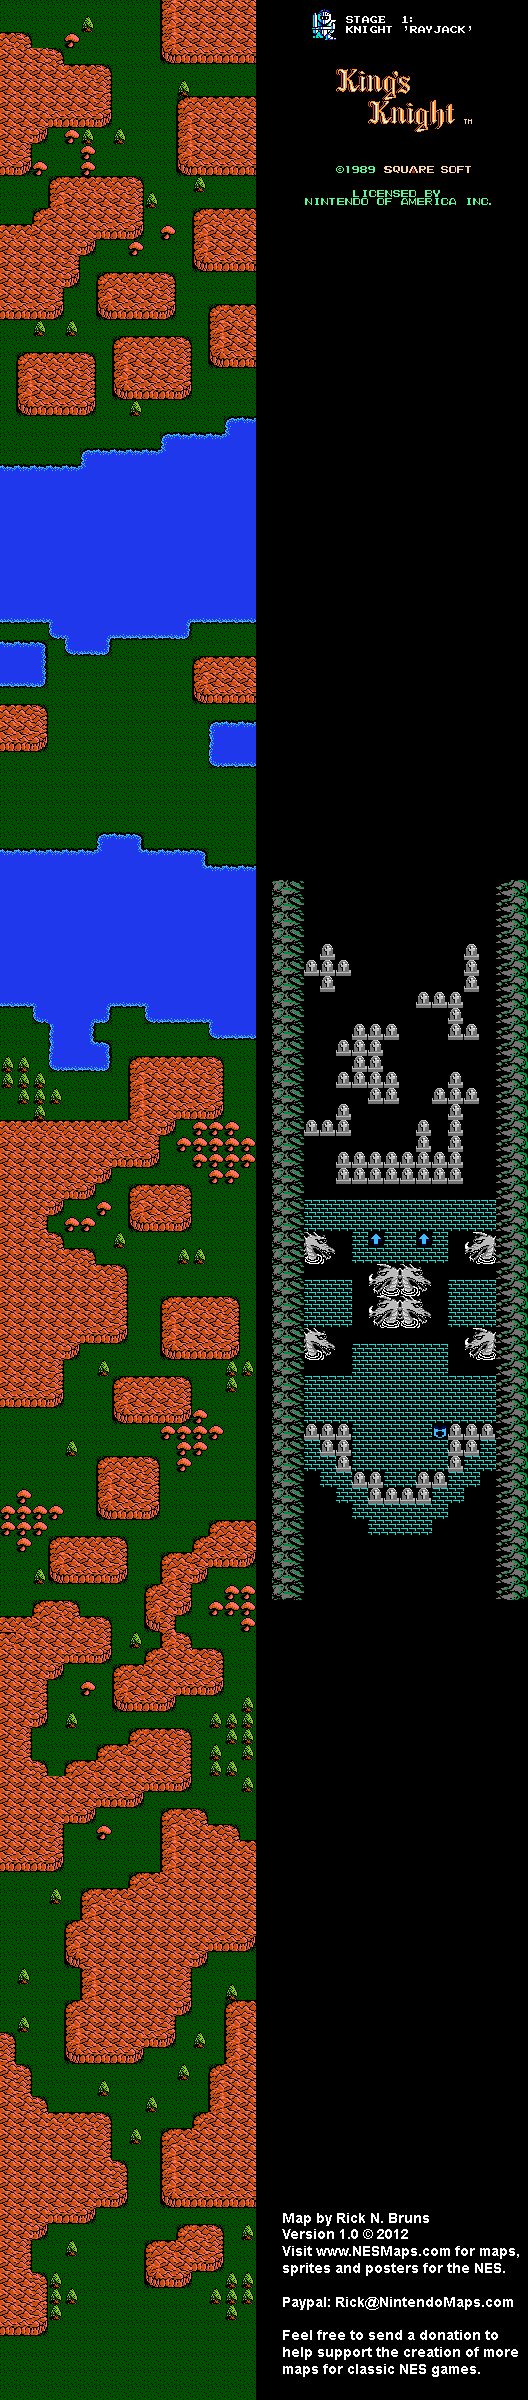 King S Knight Stage 1 Nintendo Nes Map Bg